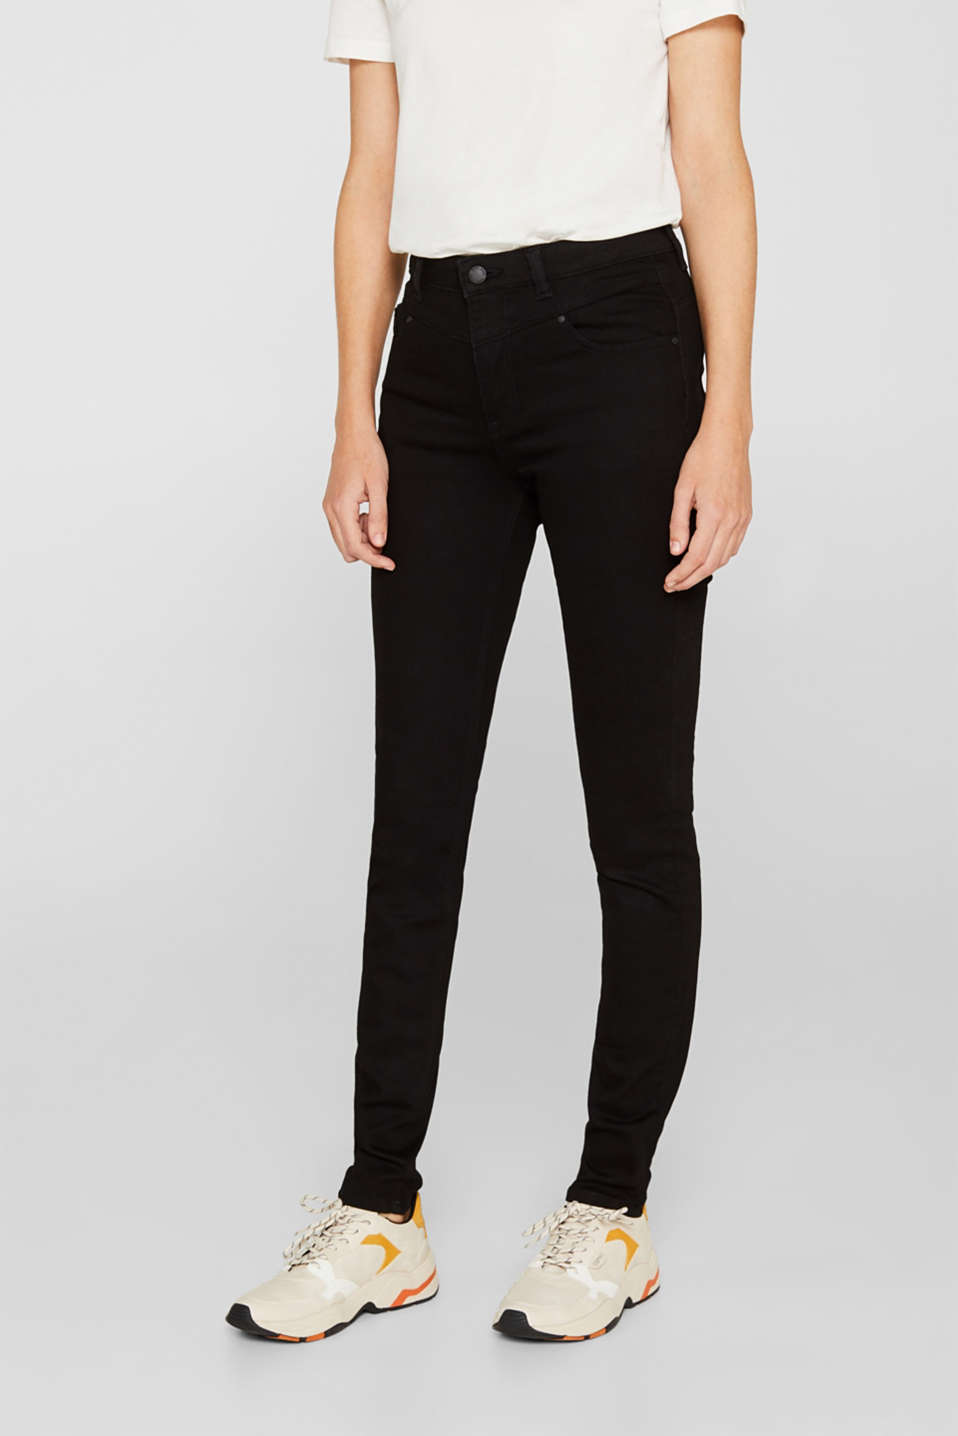 Esprit - Shaping jeans, recycled